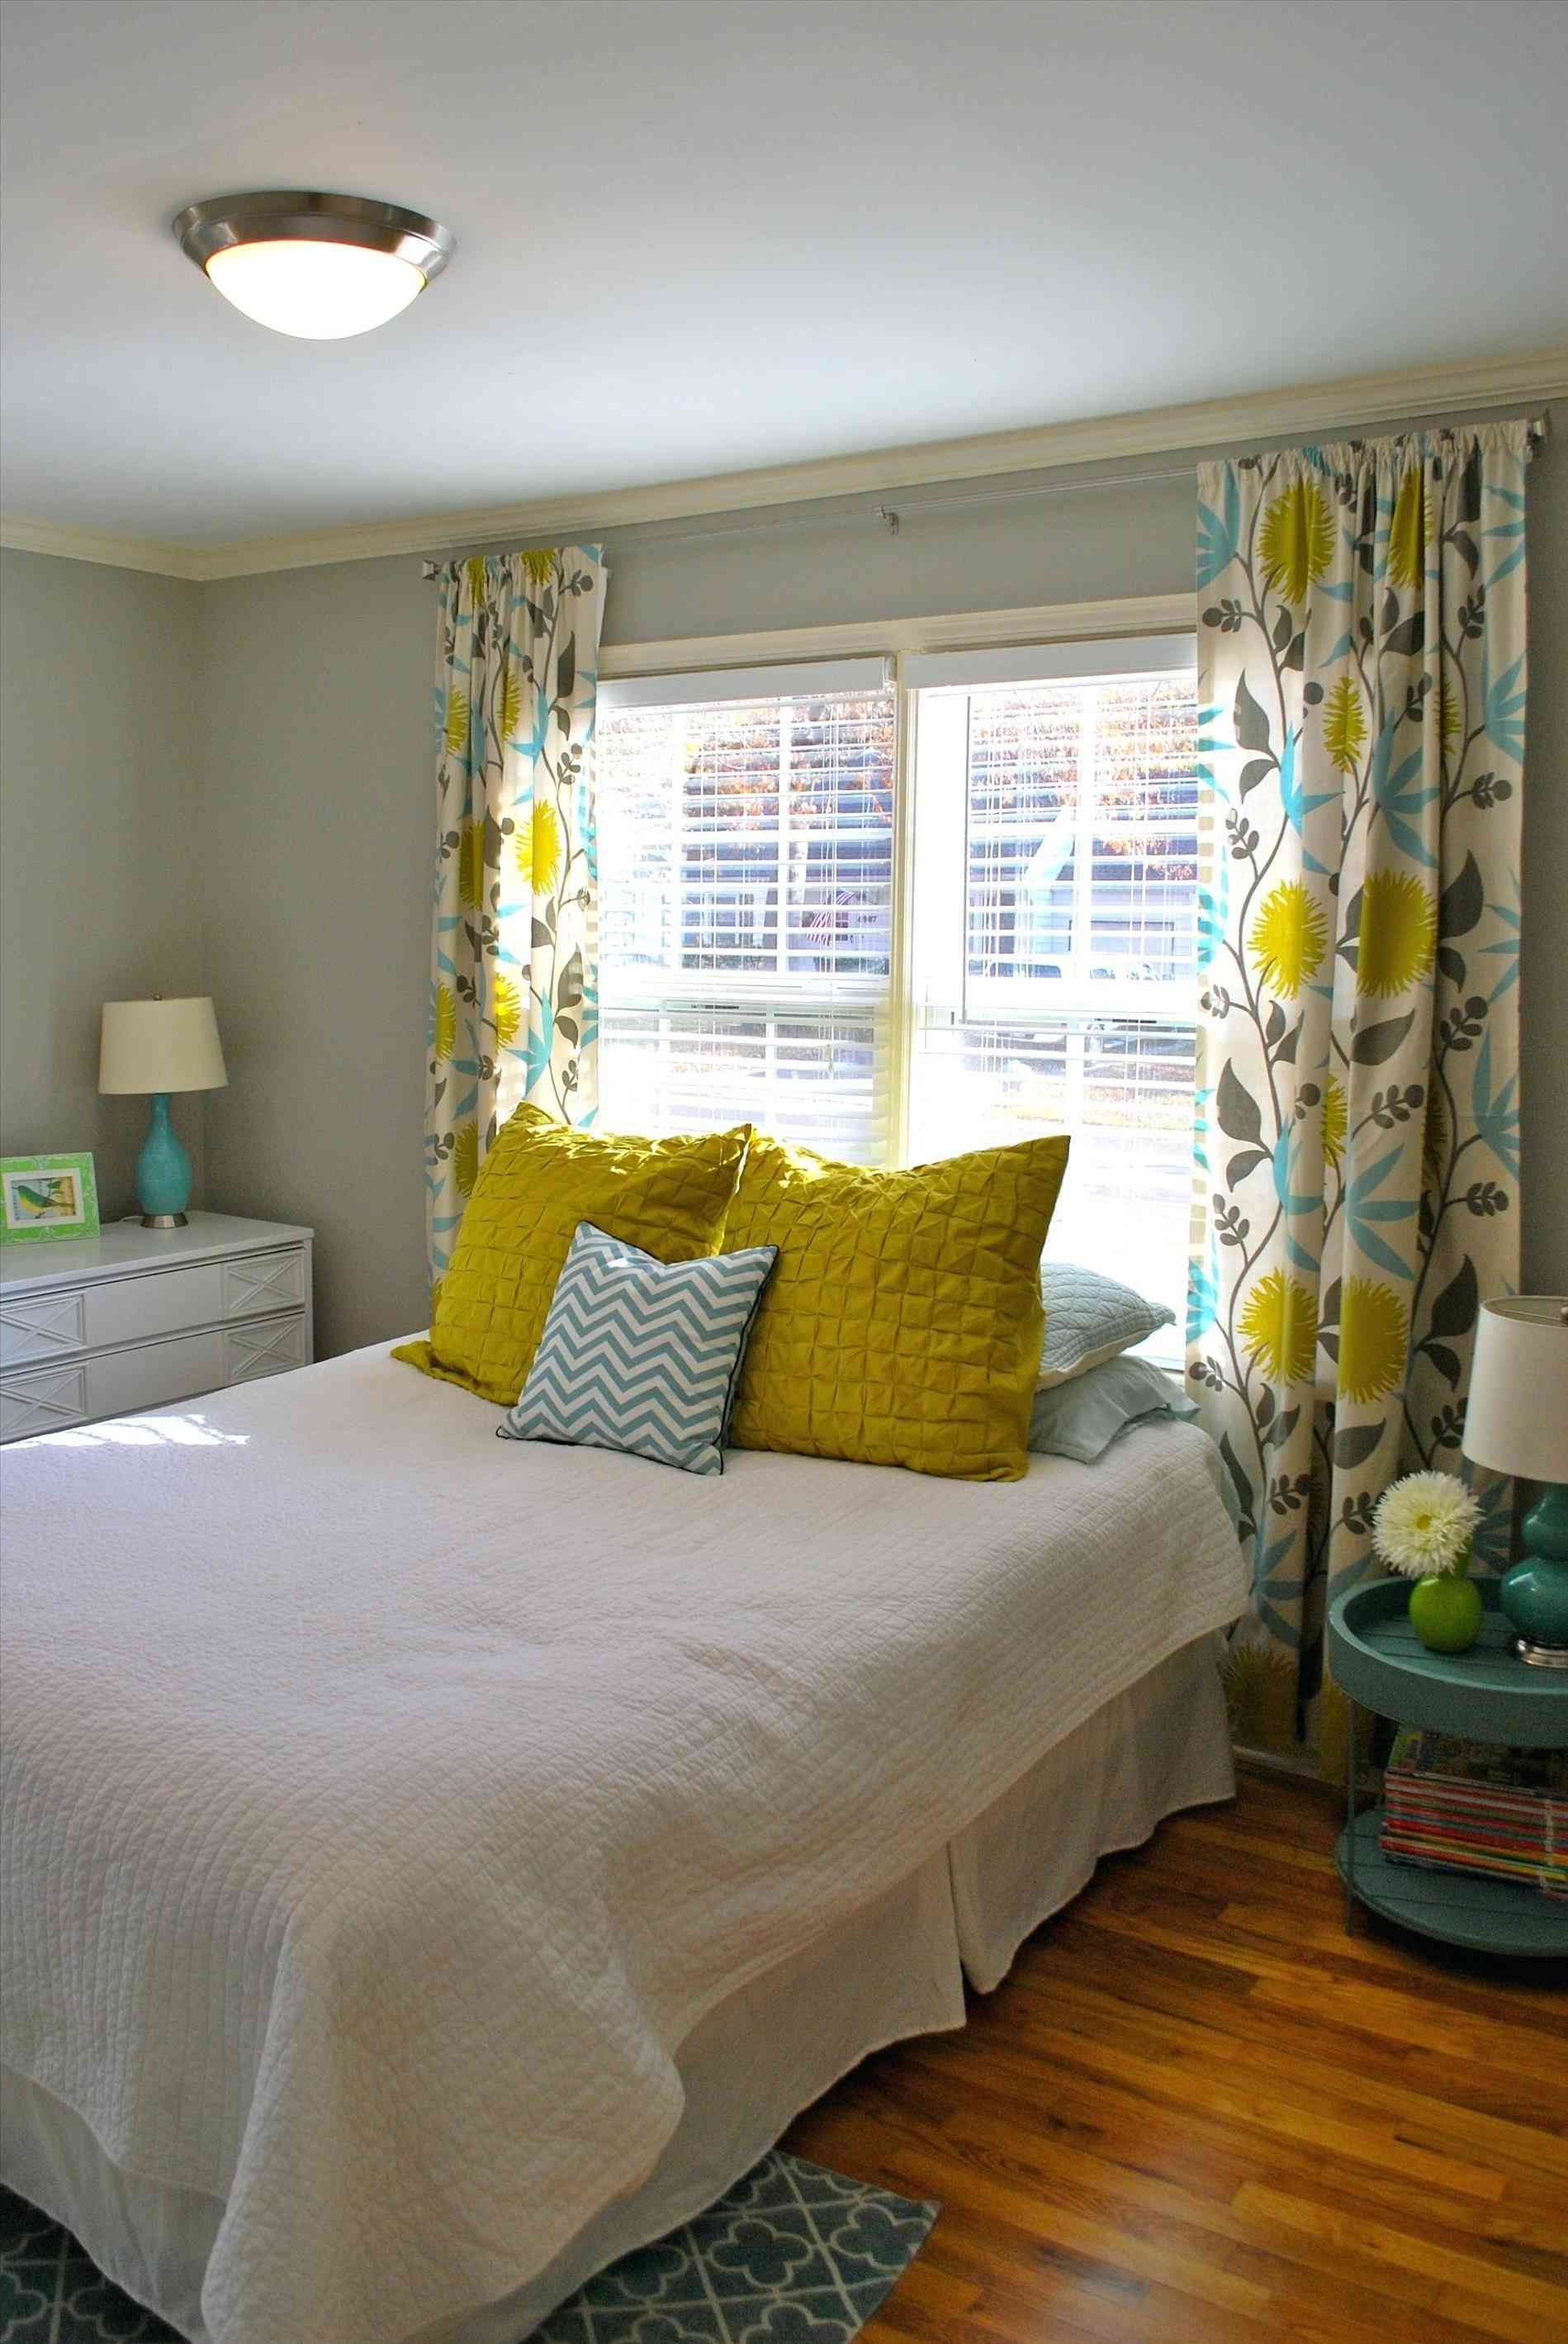 10 Teal And Yellow Bedroom Ideas Most Incredible And Also Interesting Fresh Bedroom Home Bedroom Yellow Bedroom